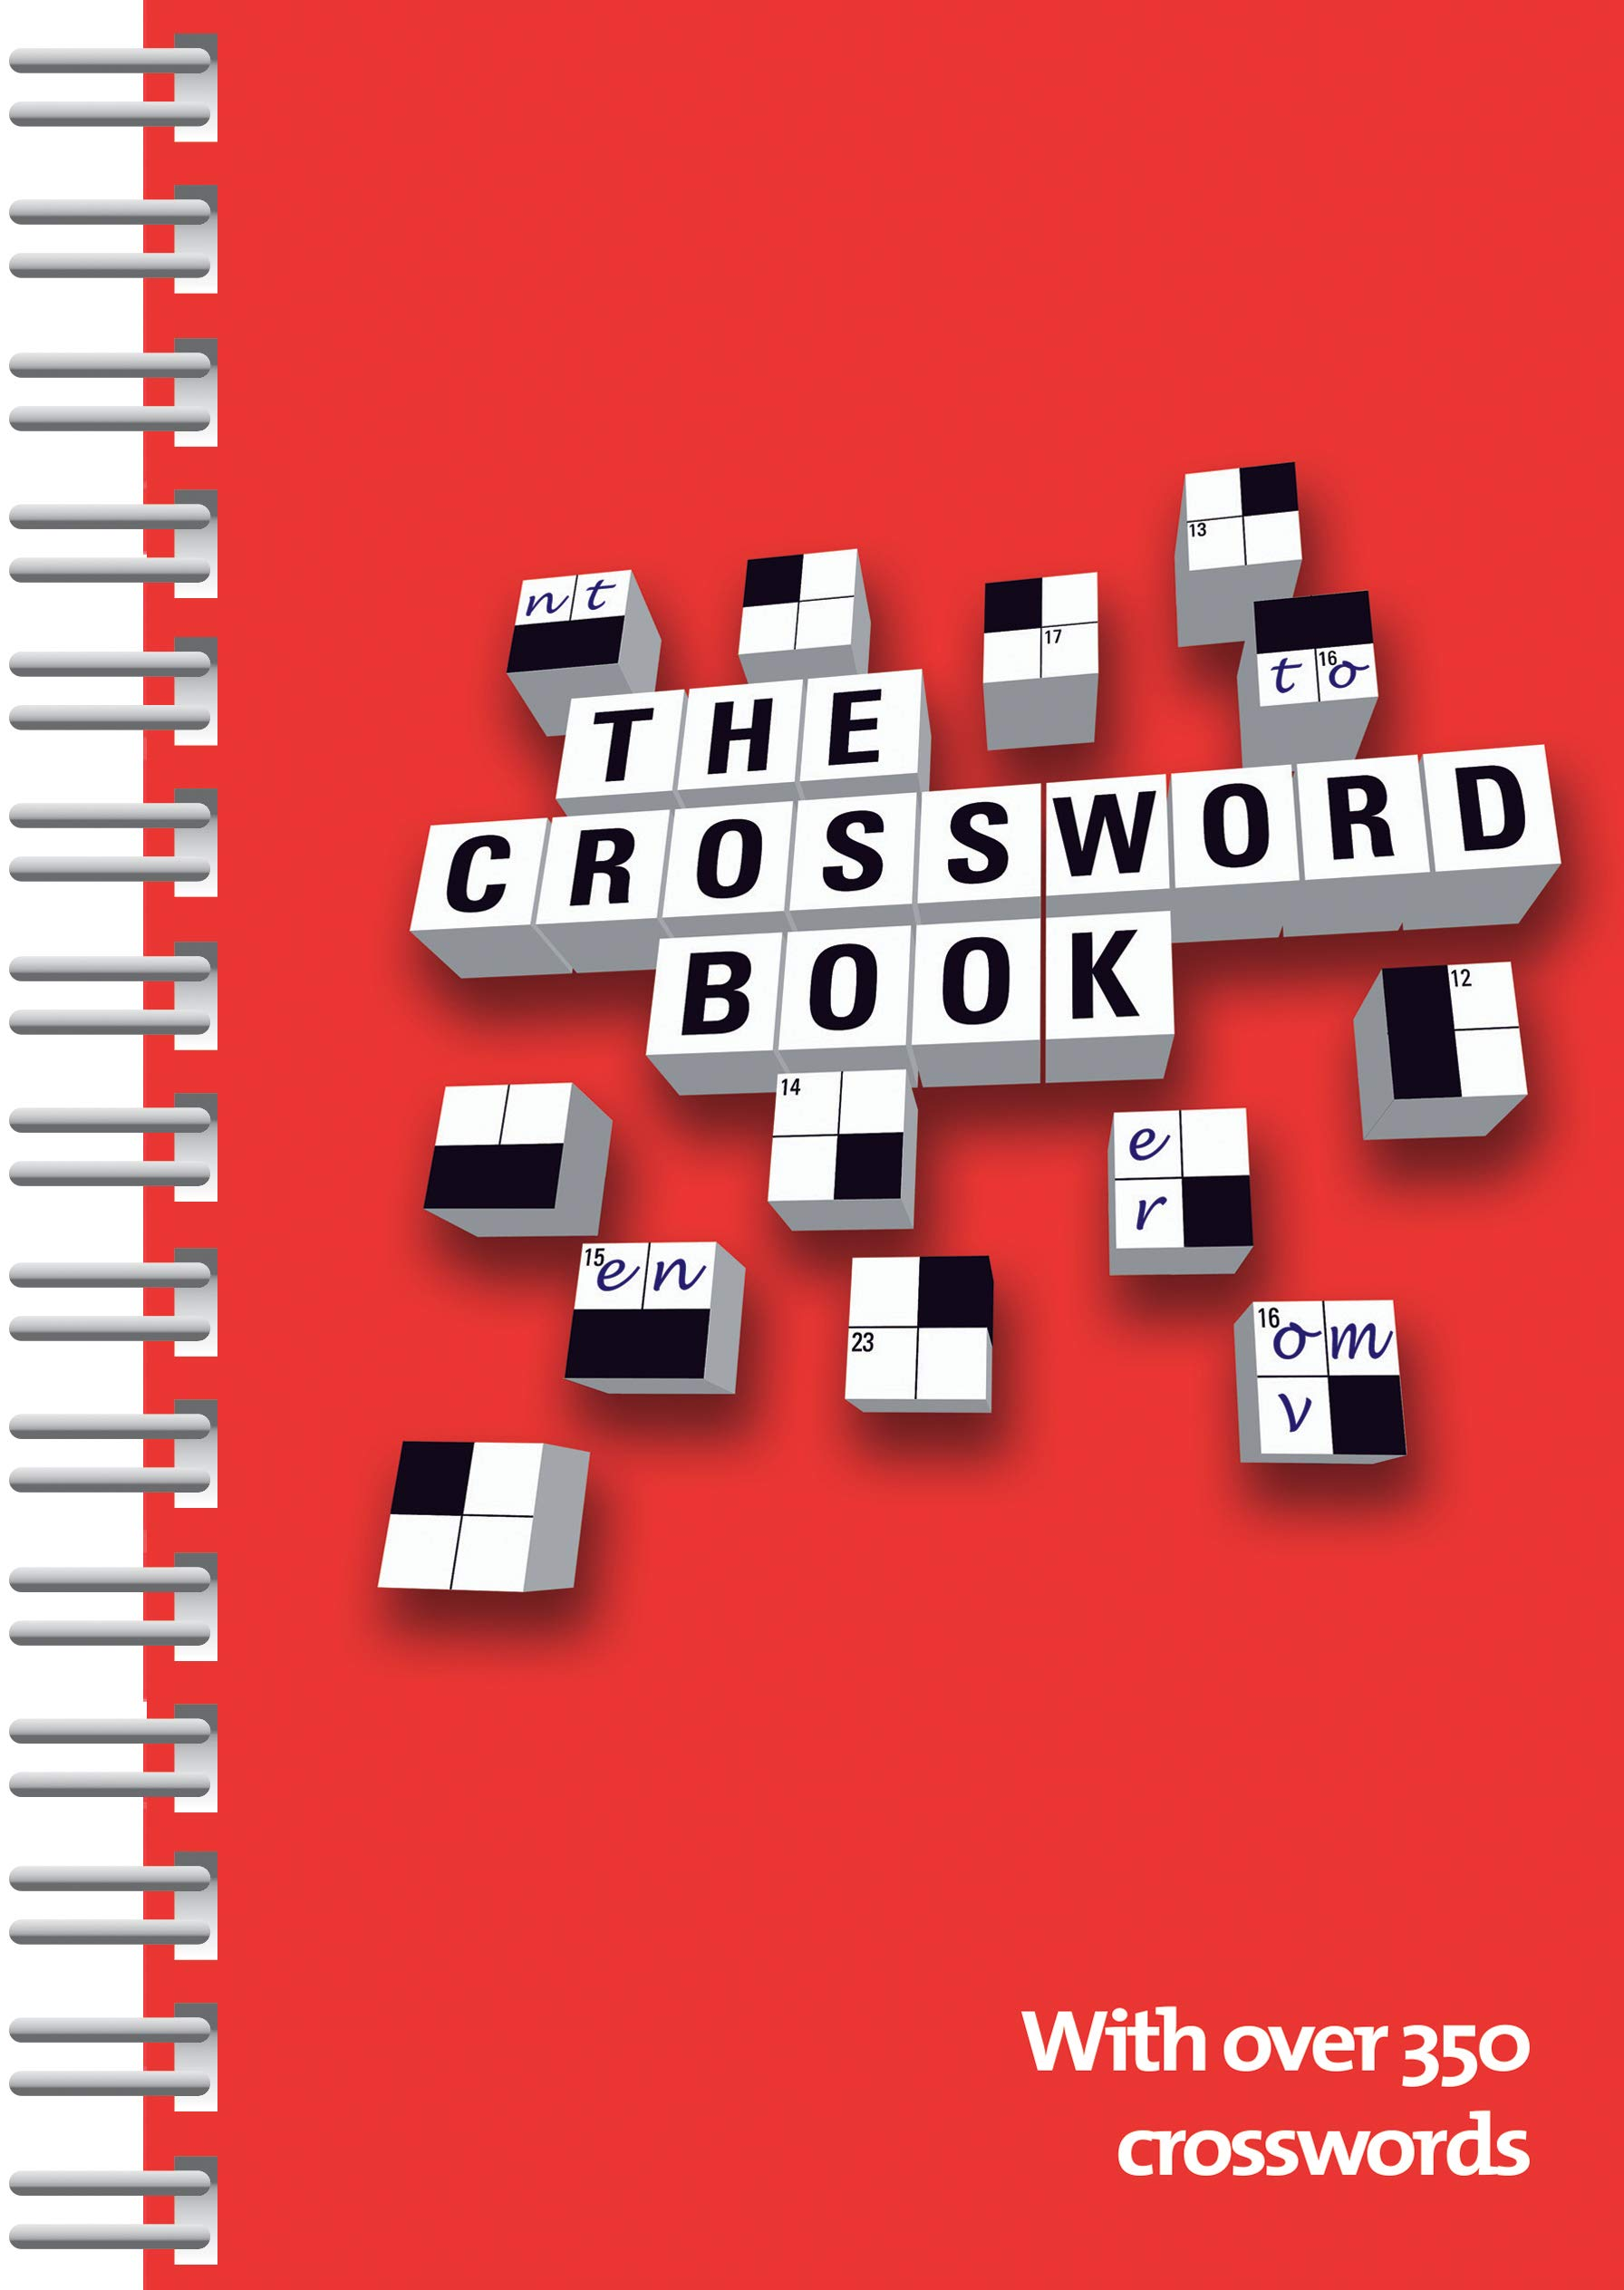 Remarkable Amazon Com The Crossword Book Over 350 Crosswords Home Interior And Landscaping Elinuenasavecom